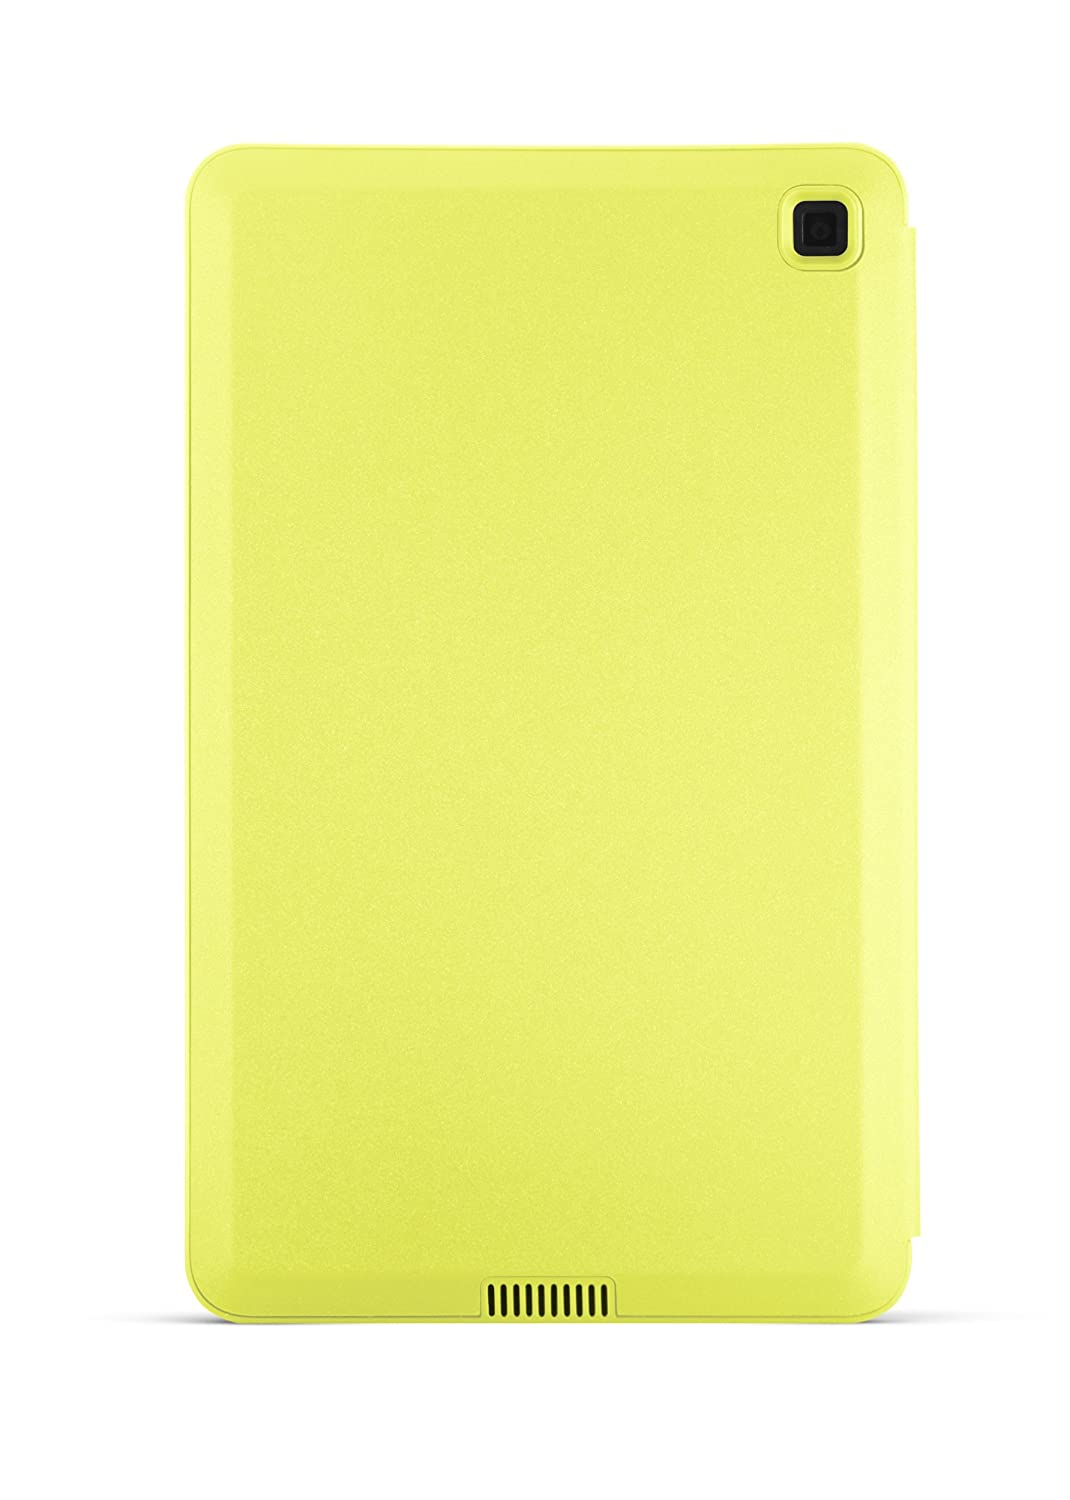 Citron 4th Generation Standing Protective Case for Fire HD 6